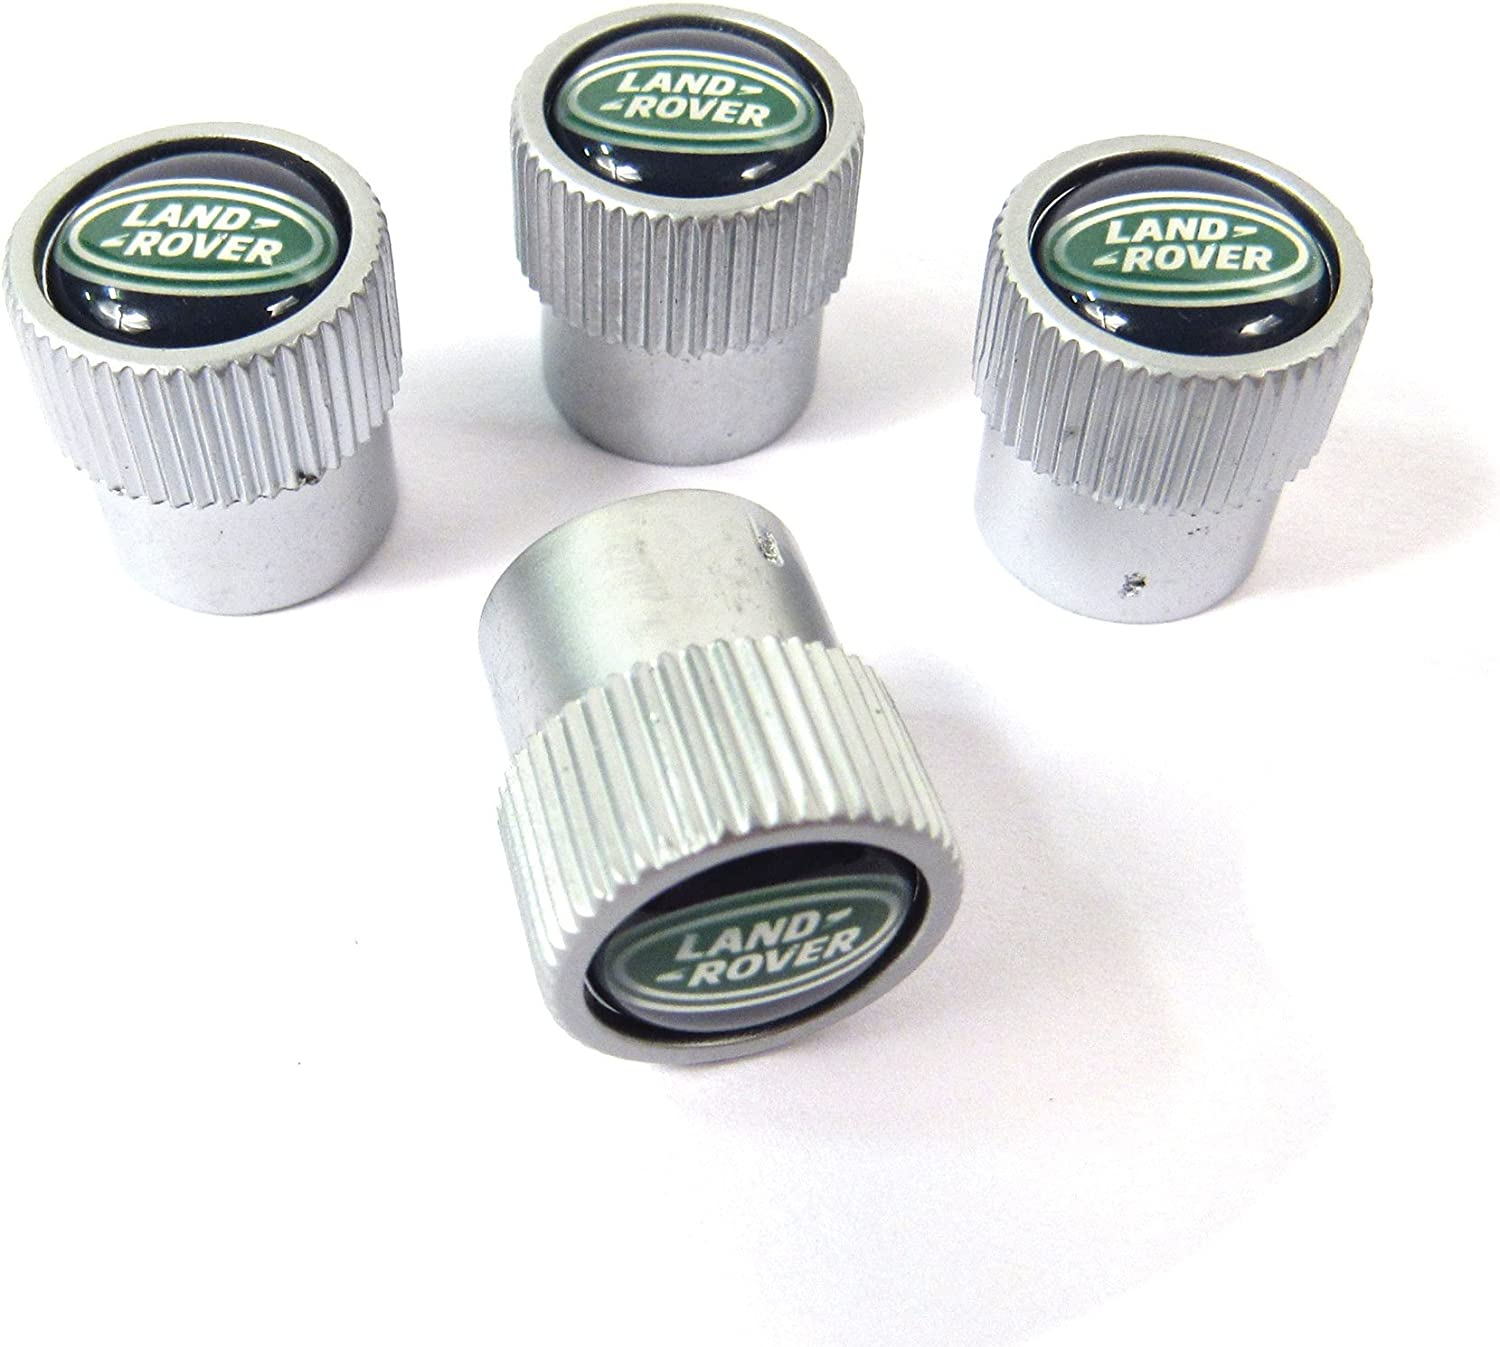 Range Rover Valve Stem Dust Cover Caps Genuine Land Rover